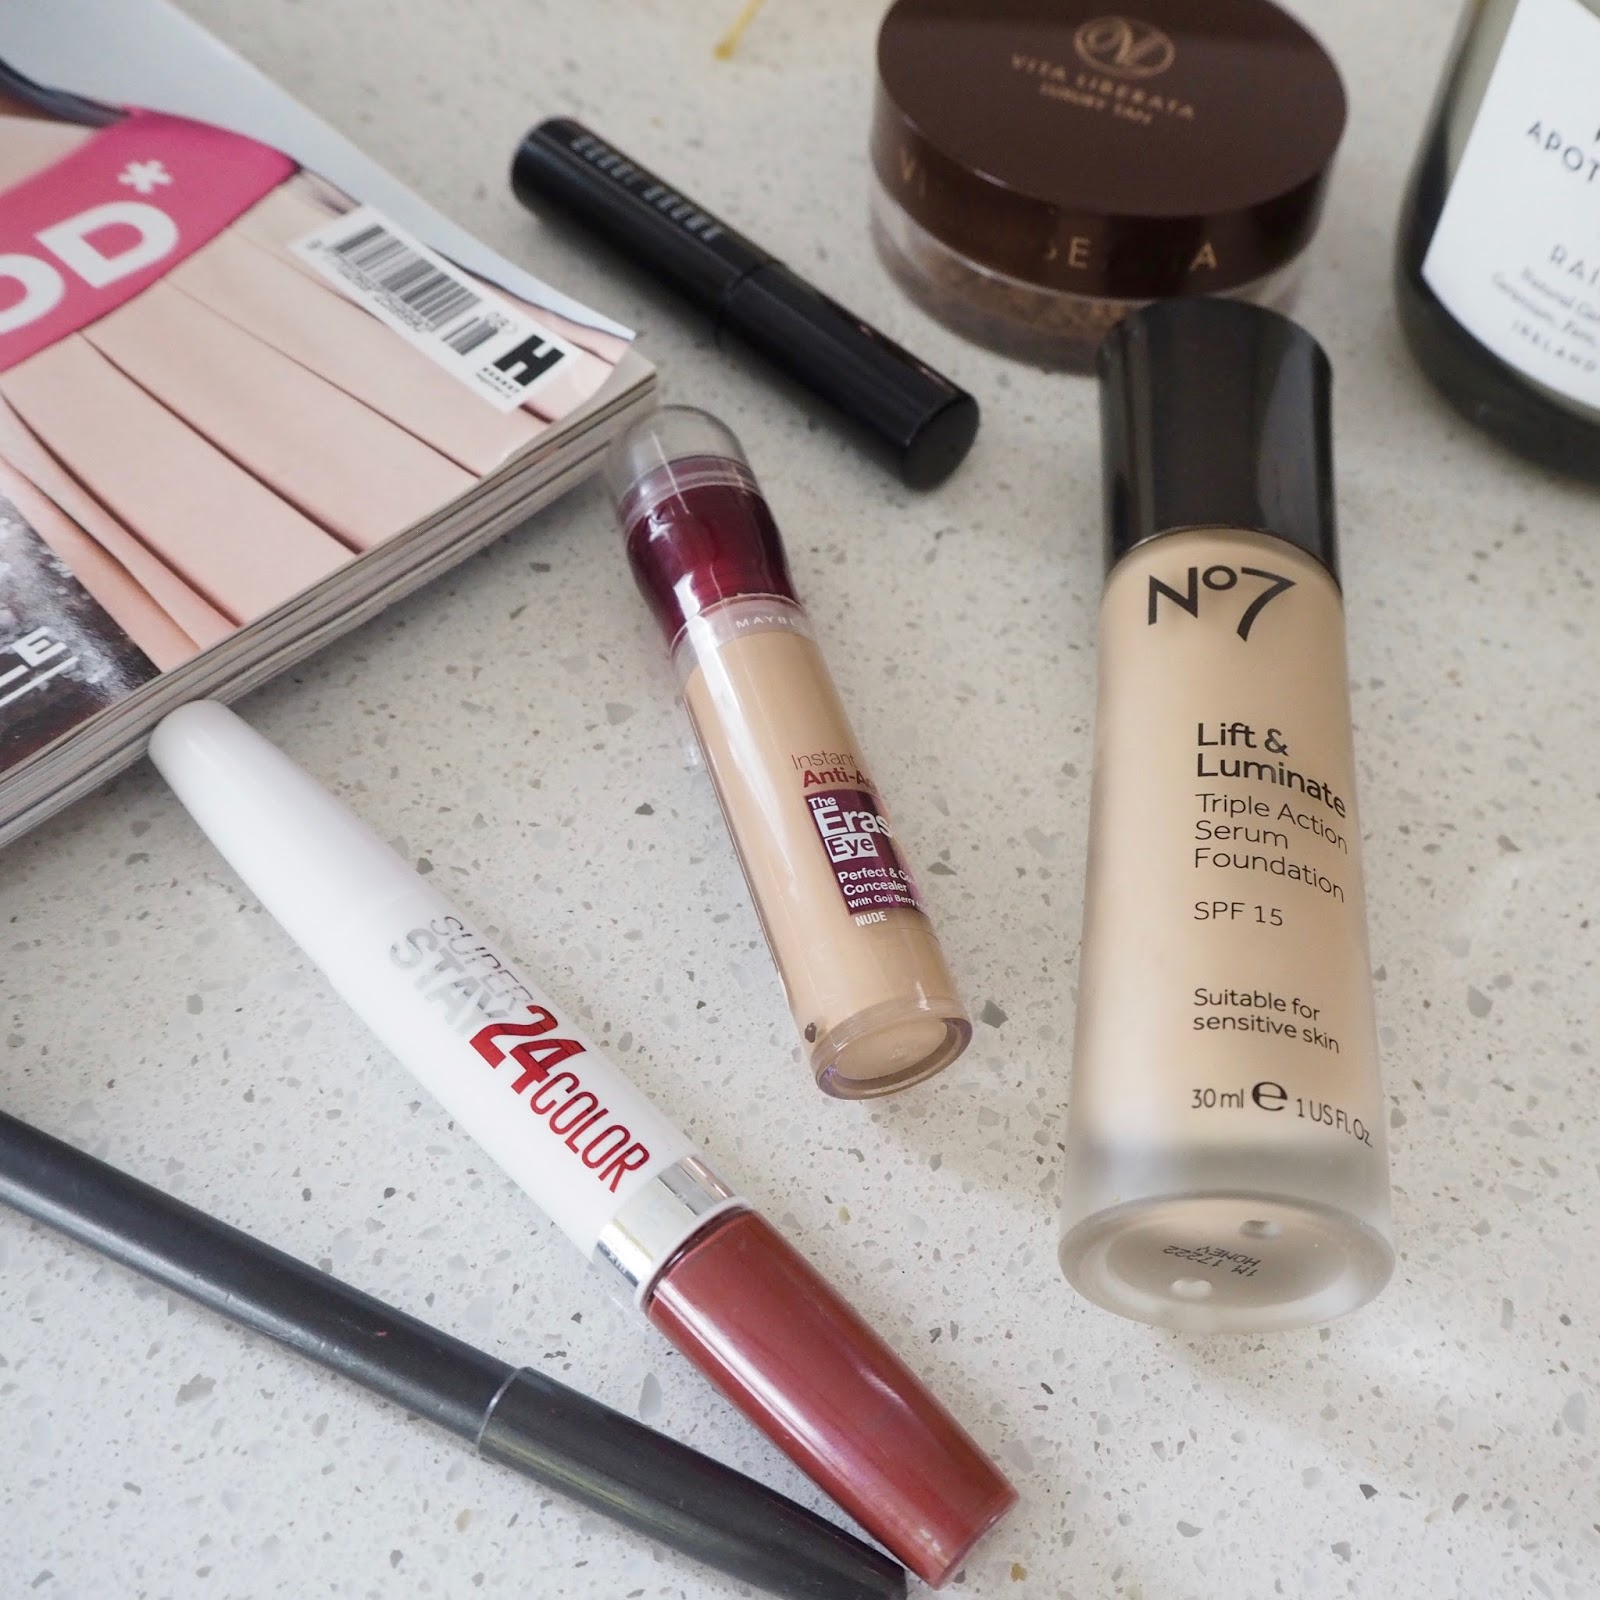 My 6 (7) Must Have Make Up Items | No  7 Lift & Luminate Foundation